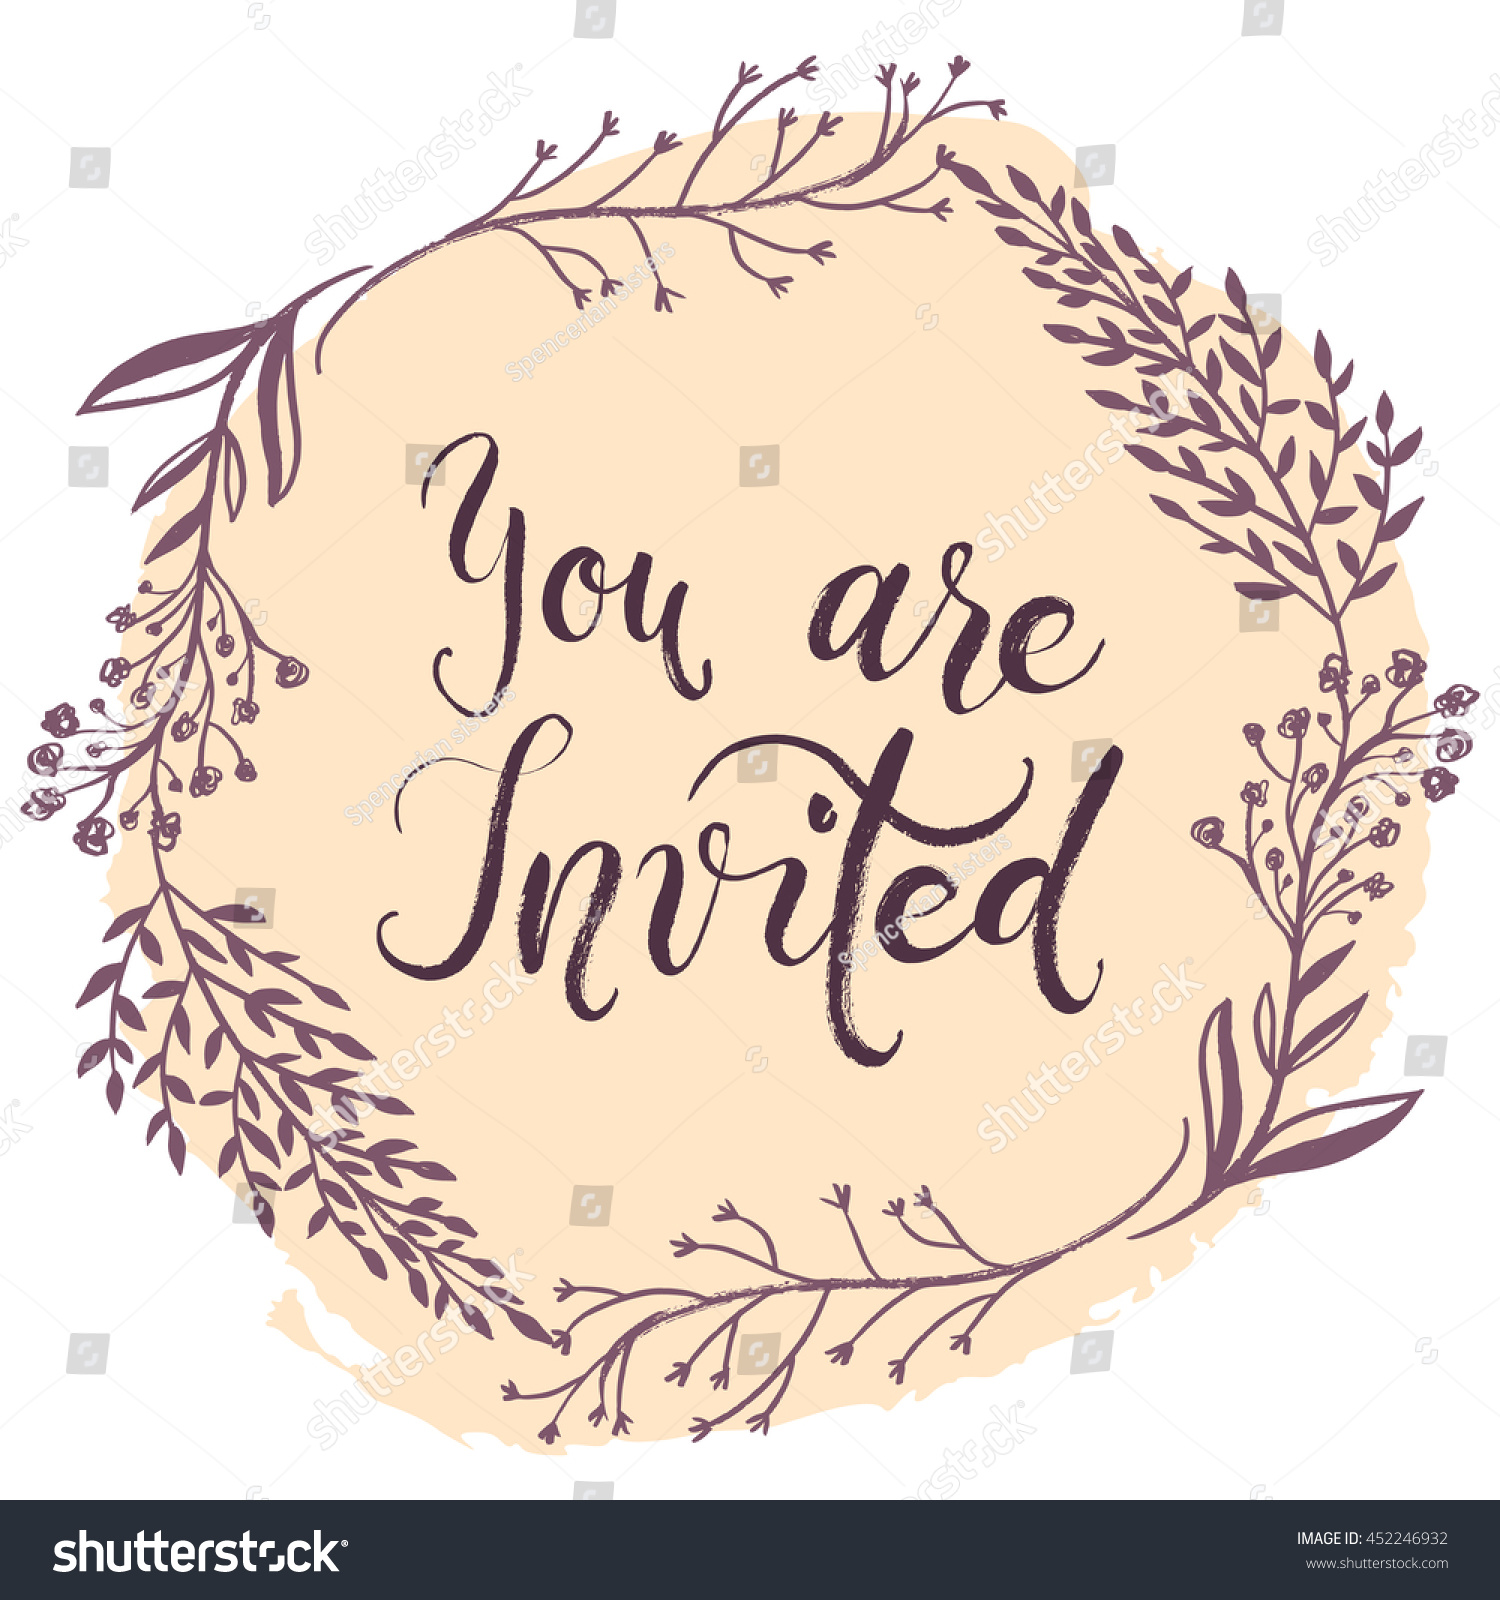 you invited party invitation card vector stock vector 452246932 shutterstock. Black Bedroom Furniture Sets. Home Design Ideas